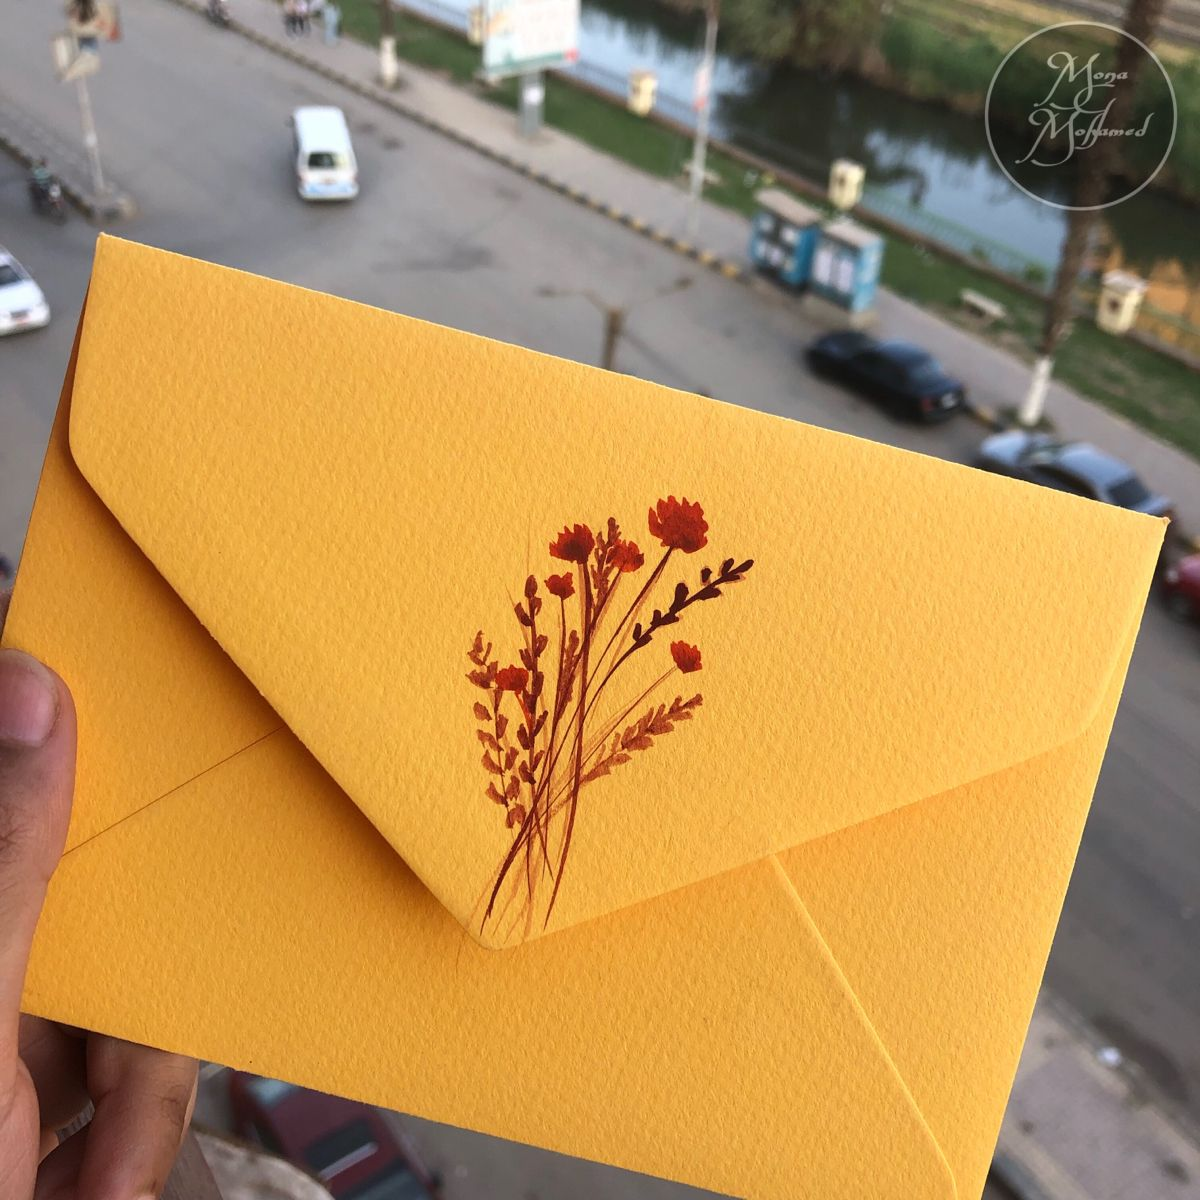 Pin By Mona G Mohamed On Letters جوابات ورقية Makeup Bouquet Gift Paper Crafts Diy Snail Mail Art